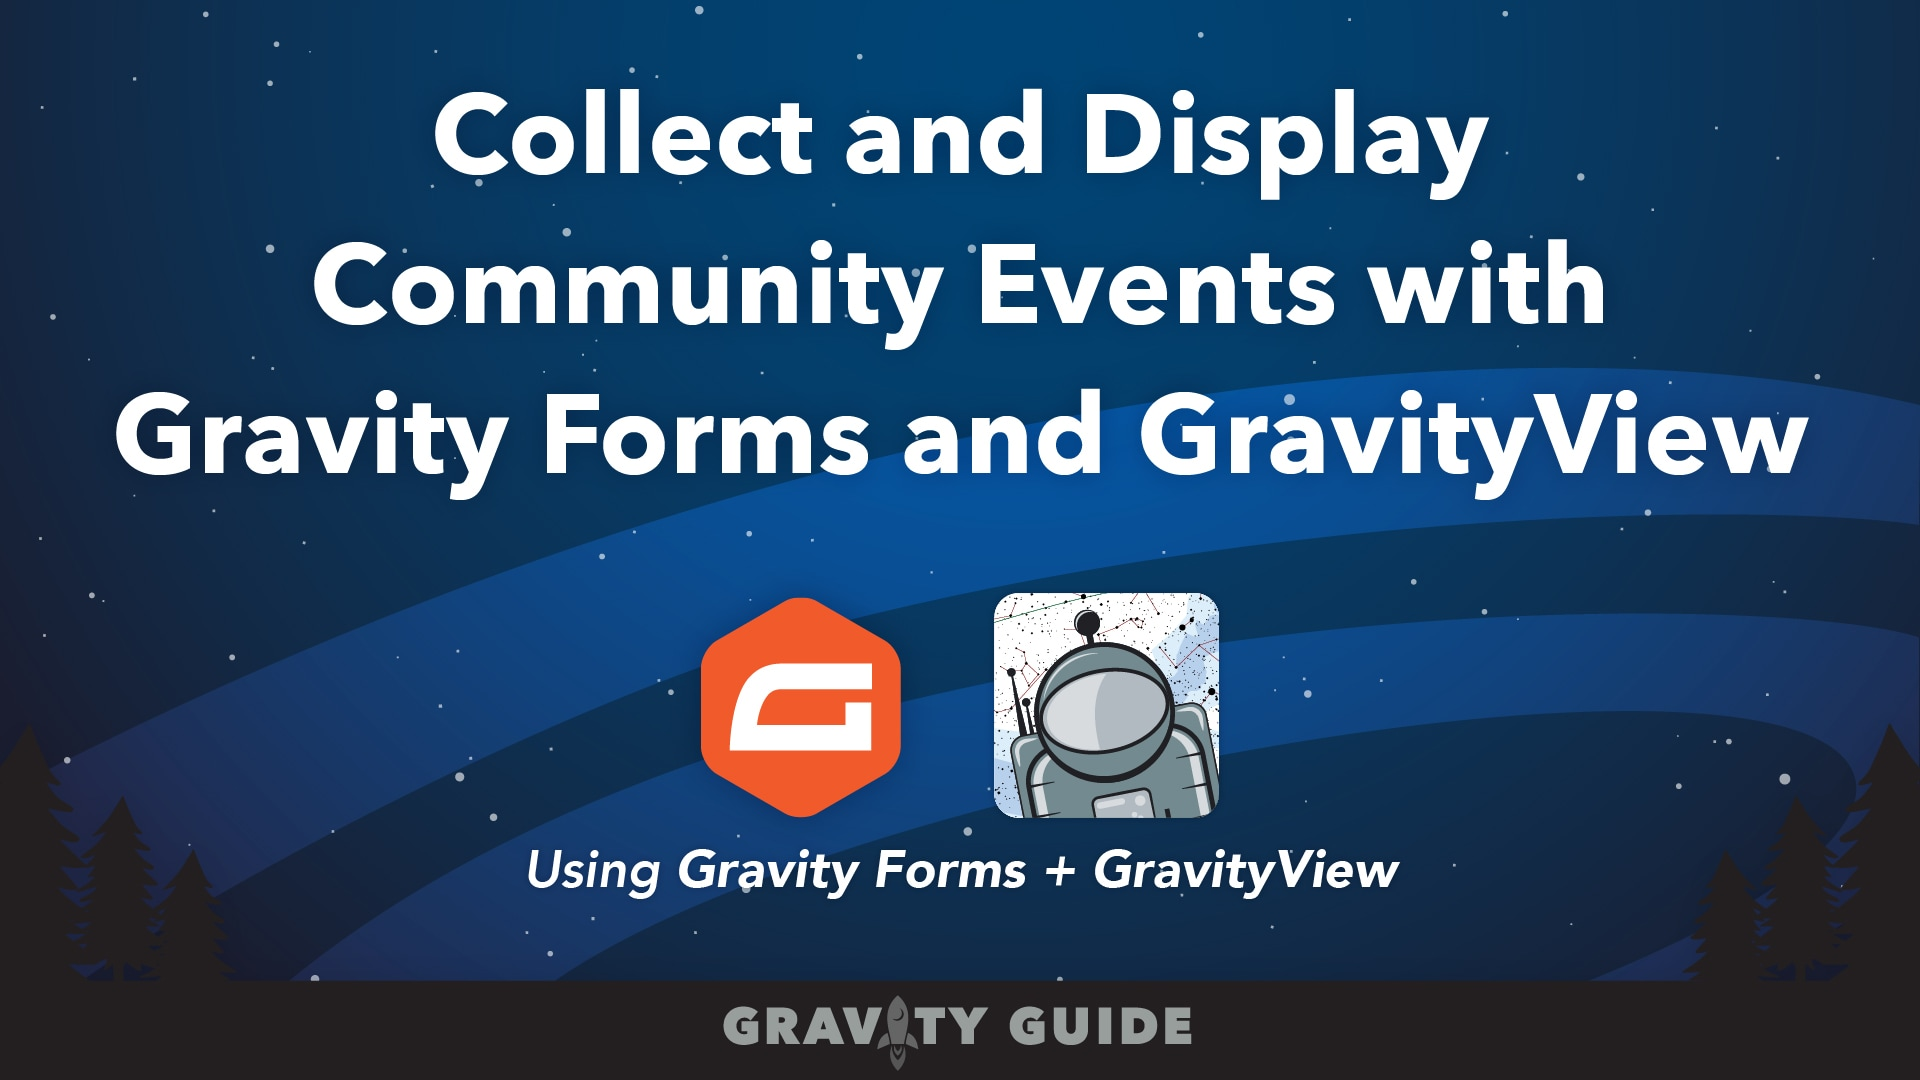 Collect and Display Community Events with Gravity Forms and GravityView